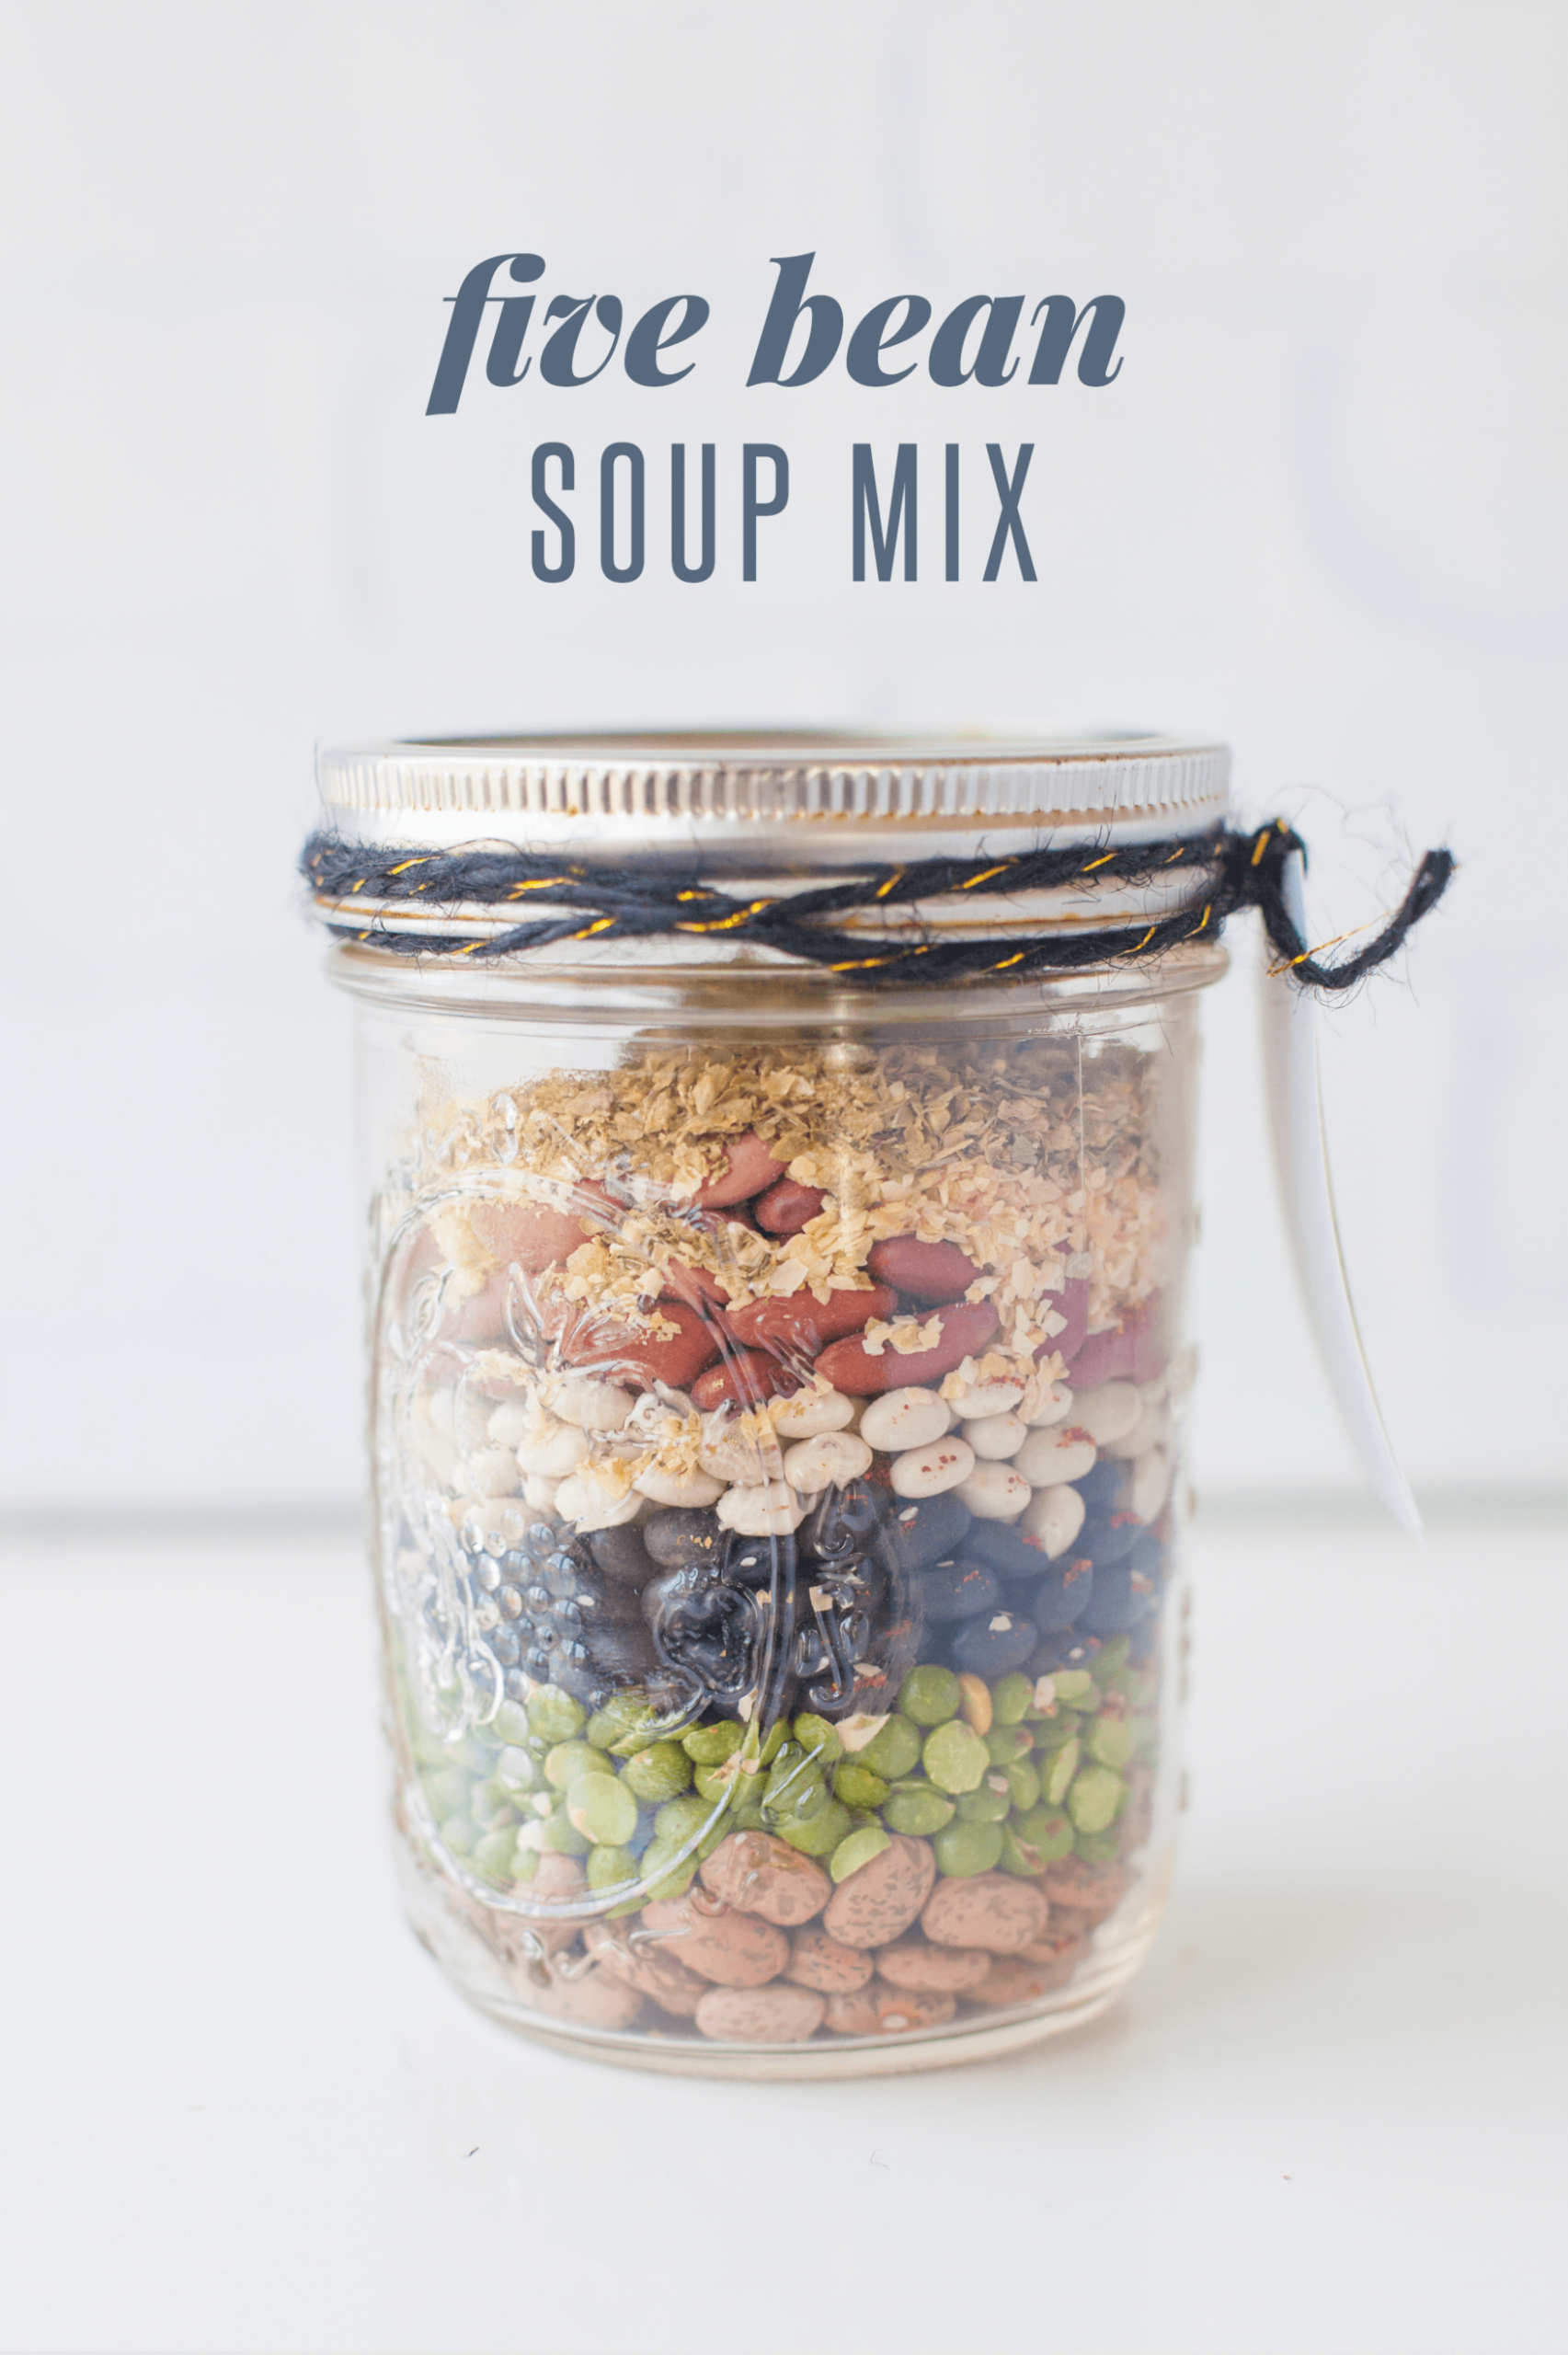 13 Homemade Soup Mixes in a Jar | Wholefully - vegetarian soup in a jar recipes